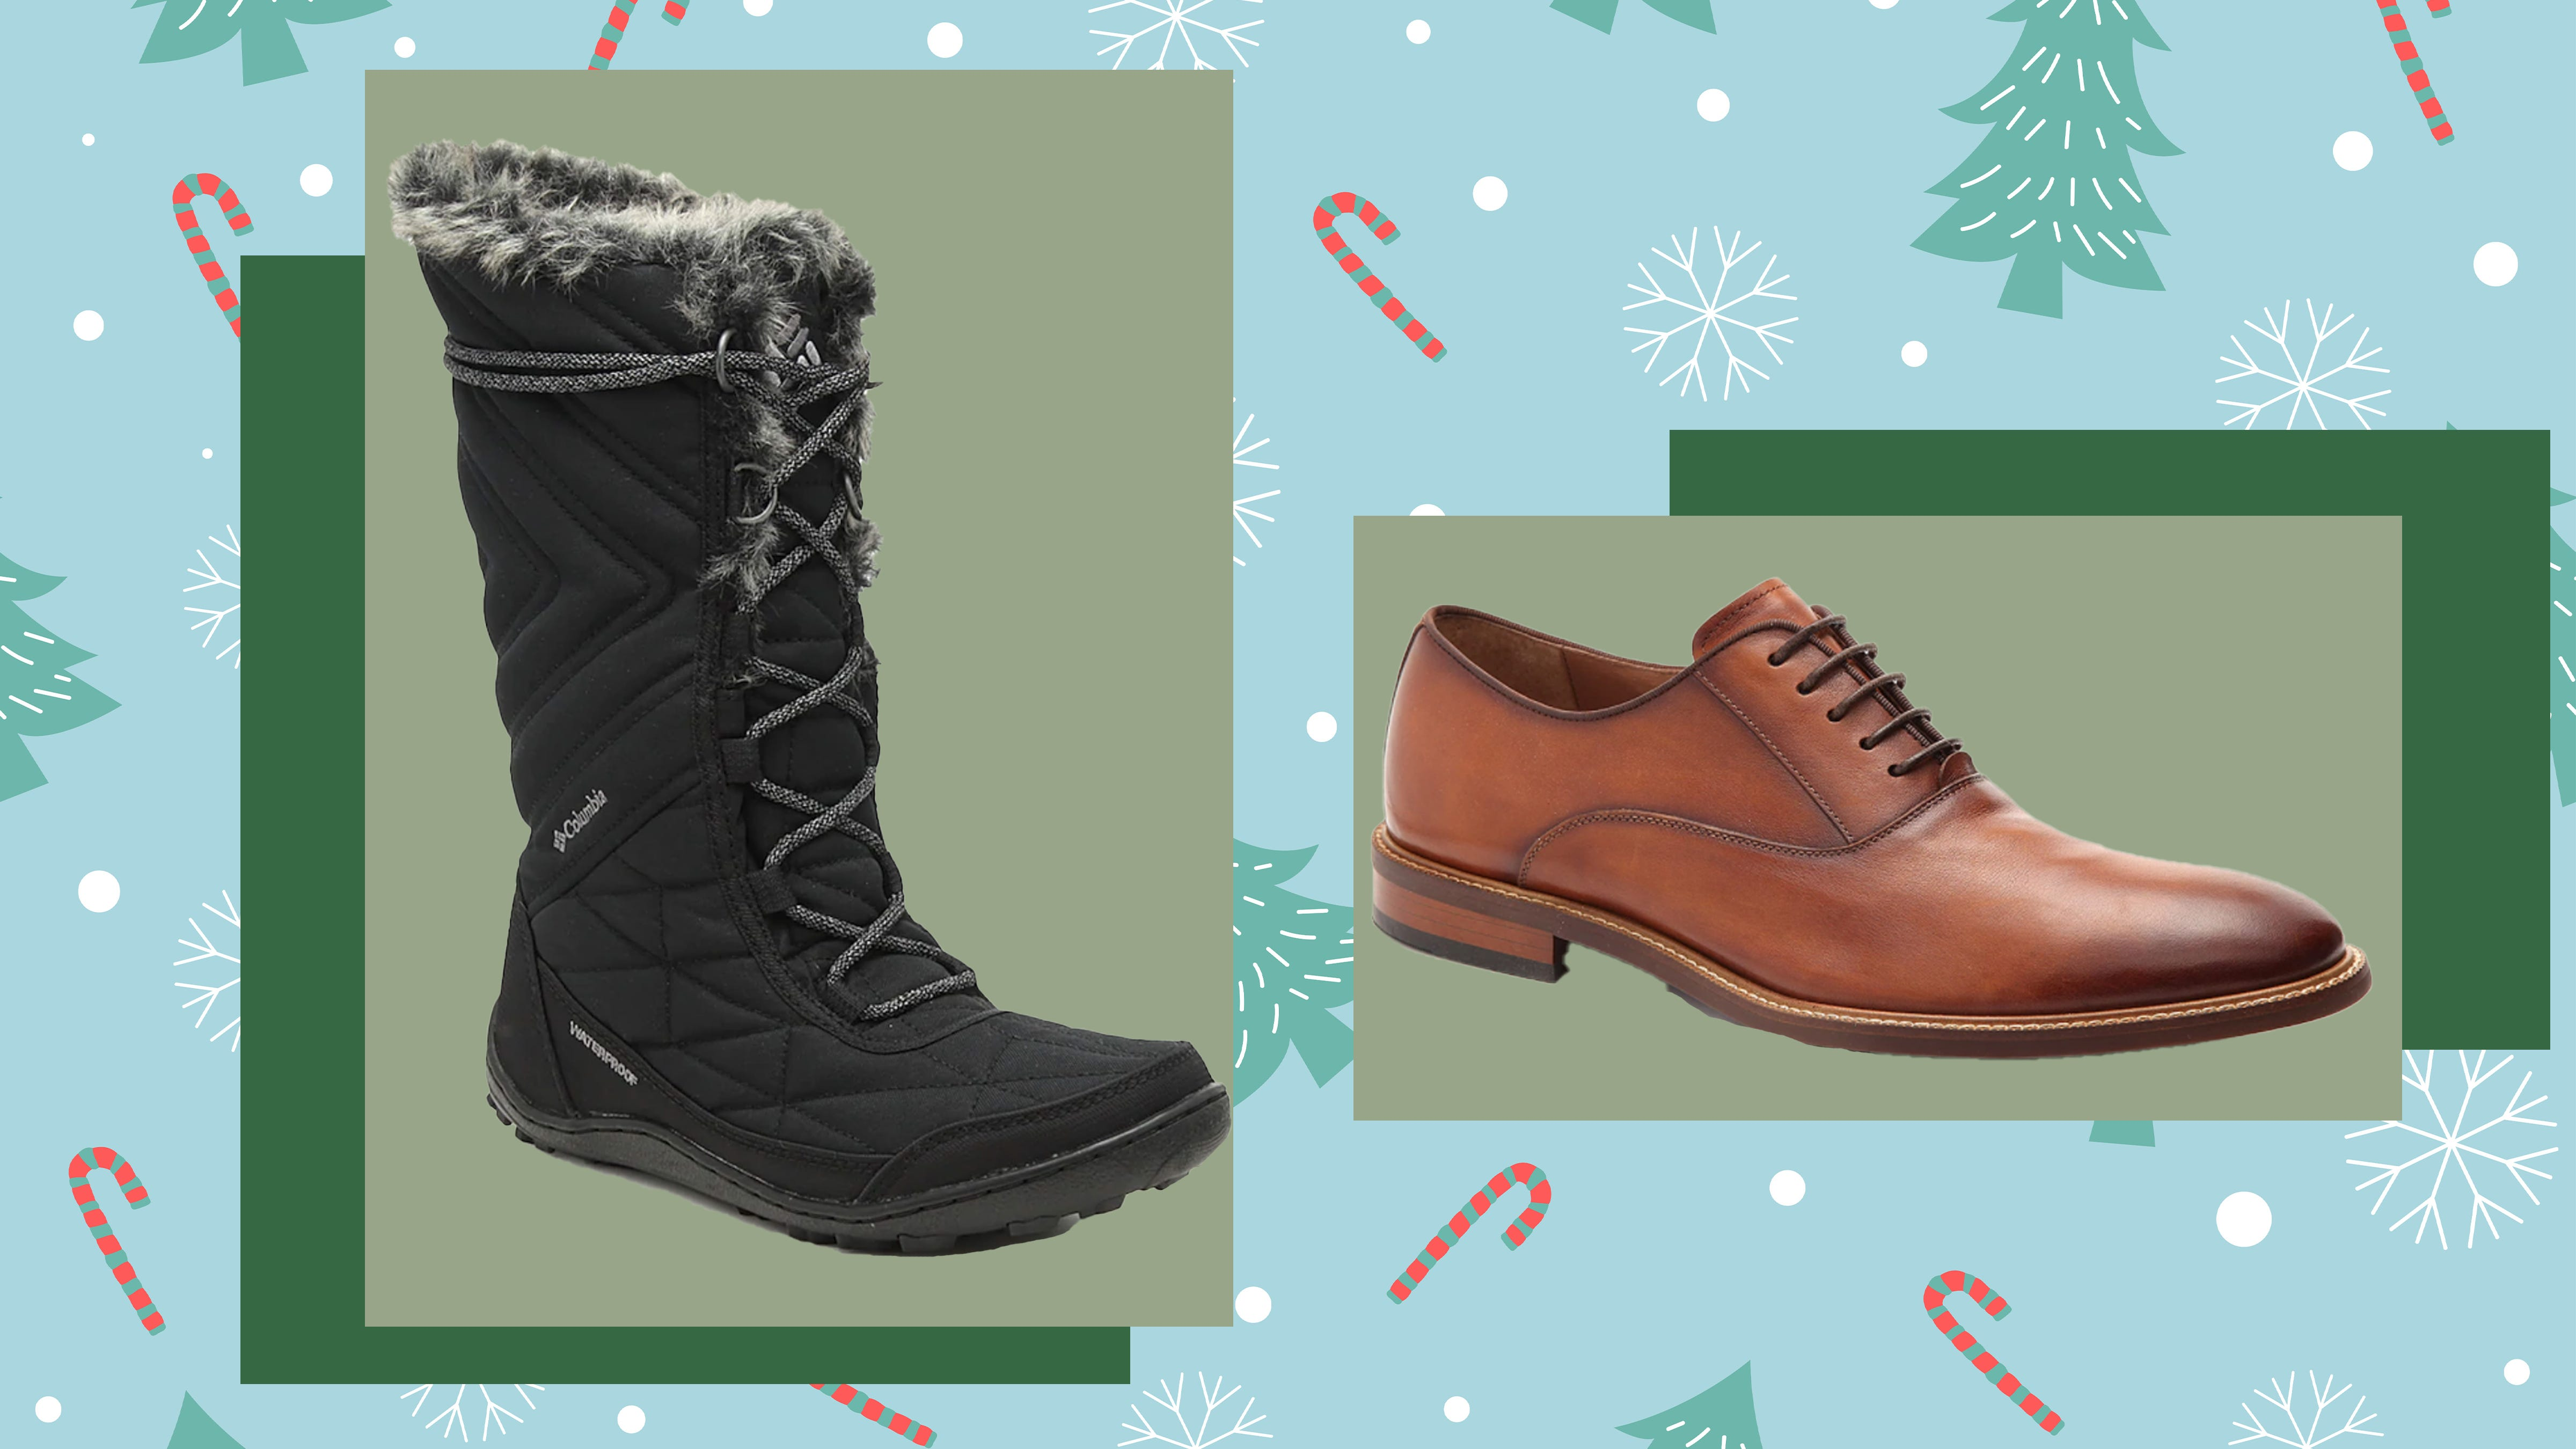 Shopping for boots? Use this DSW coupon to save up to $60